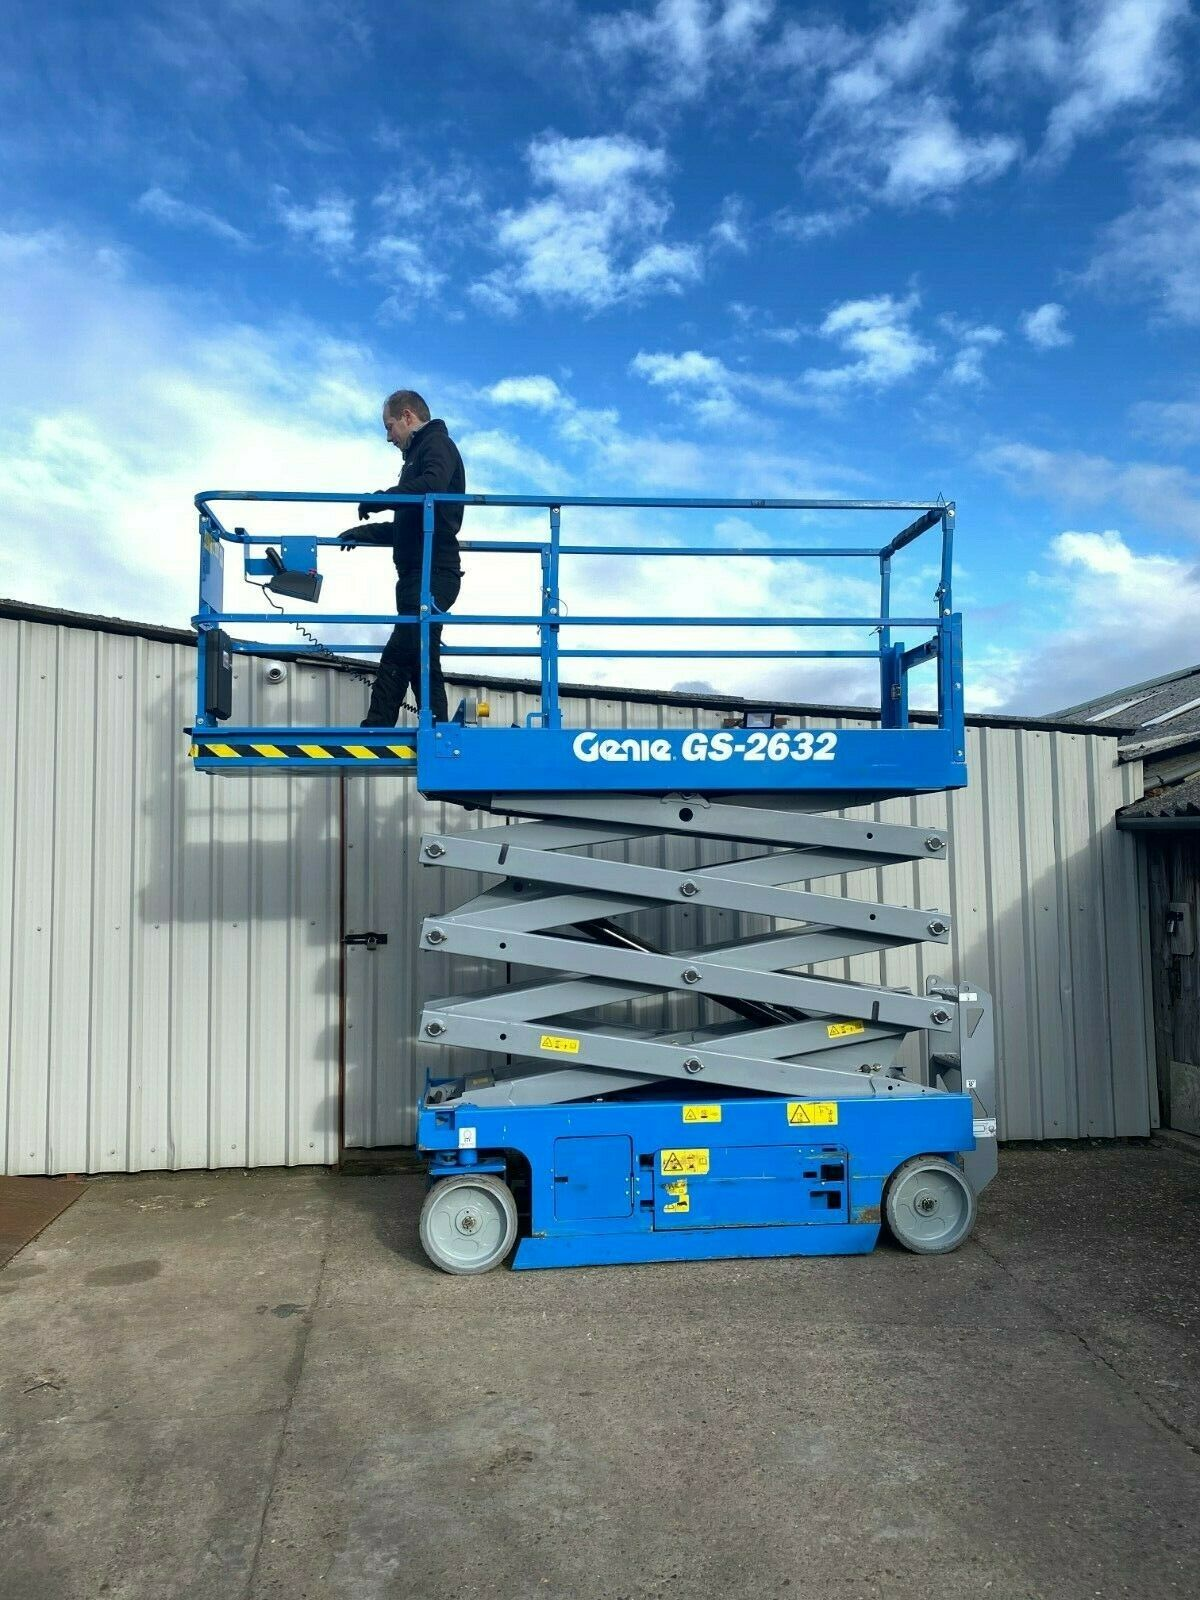 GENIE GS-2632 ACCESS PLATFORM SCISSOR LIFT, YEAR 2014 *PLUS VAT* - Image 6 of 9